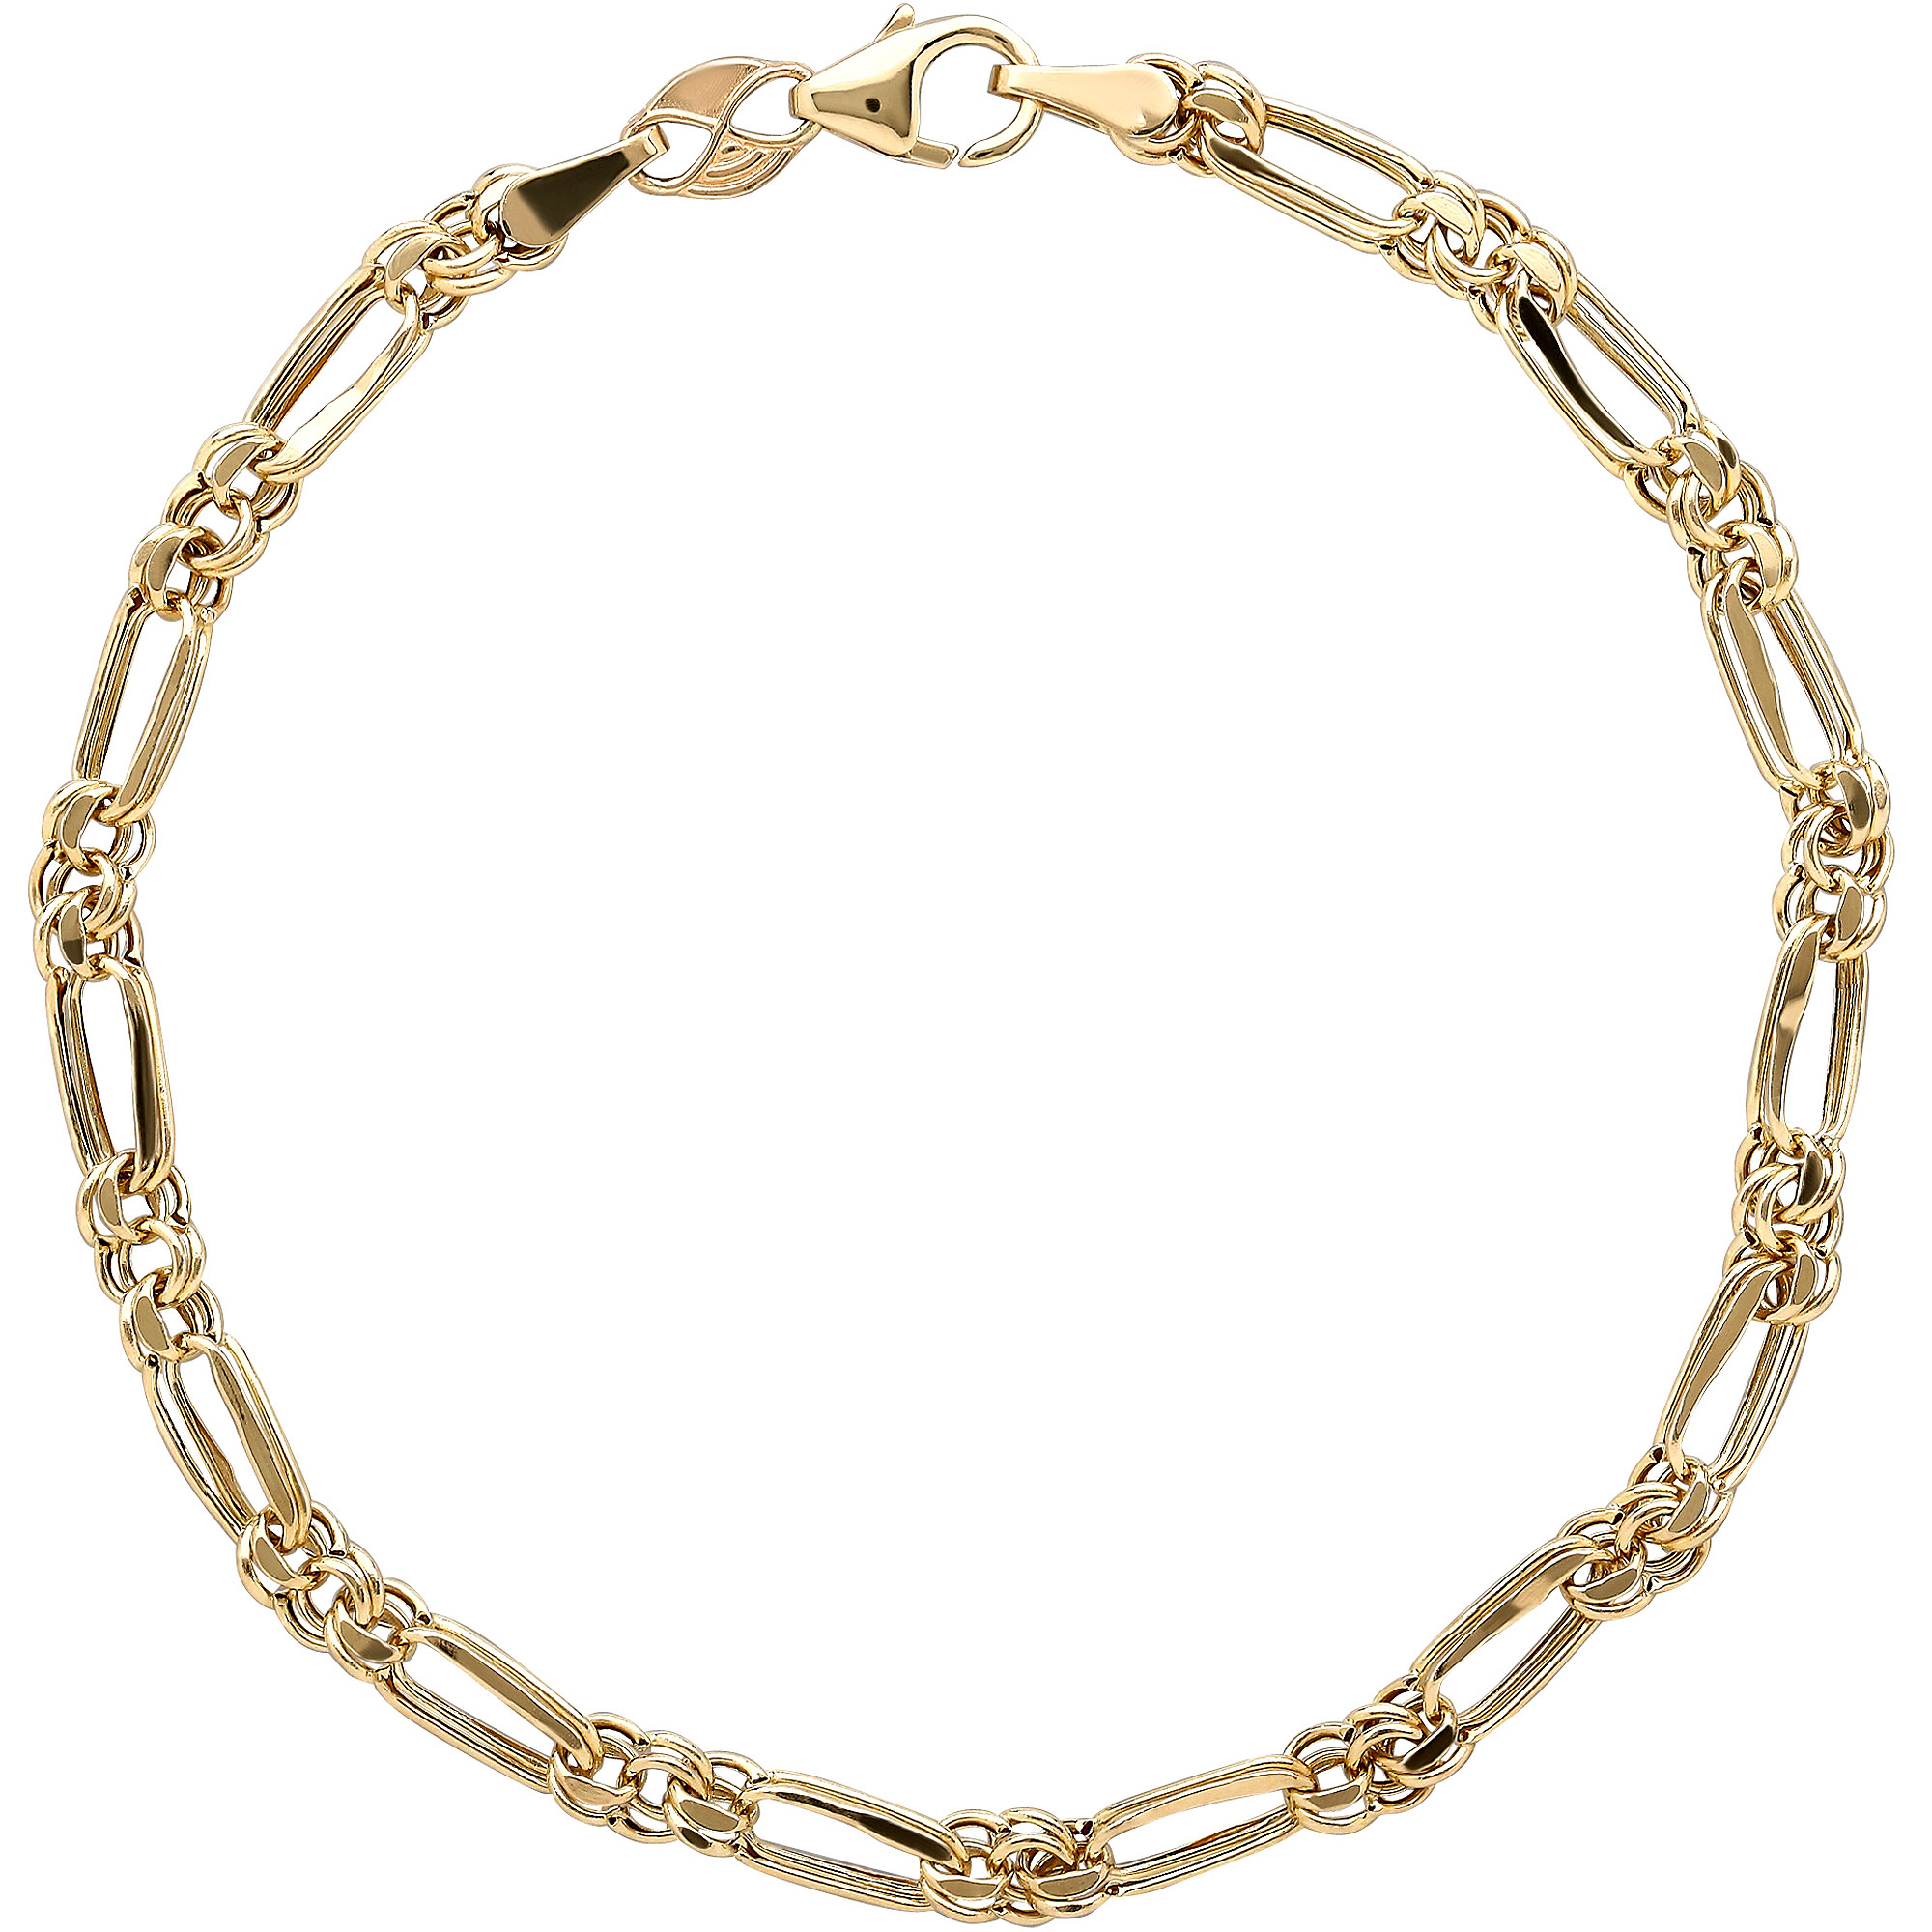 Simply Gold 10kt Yellow Gold Alternating Round and Oval Links Bracelet